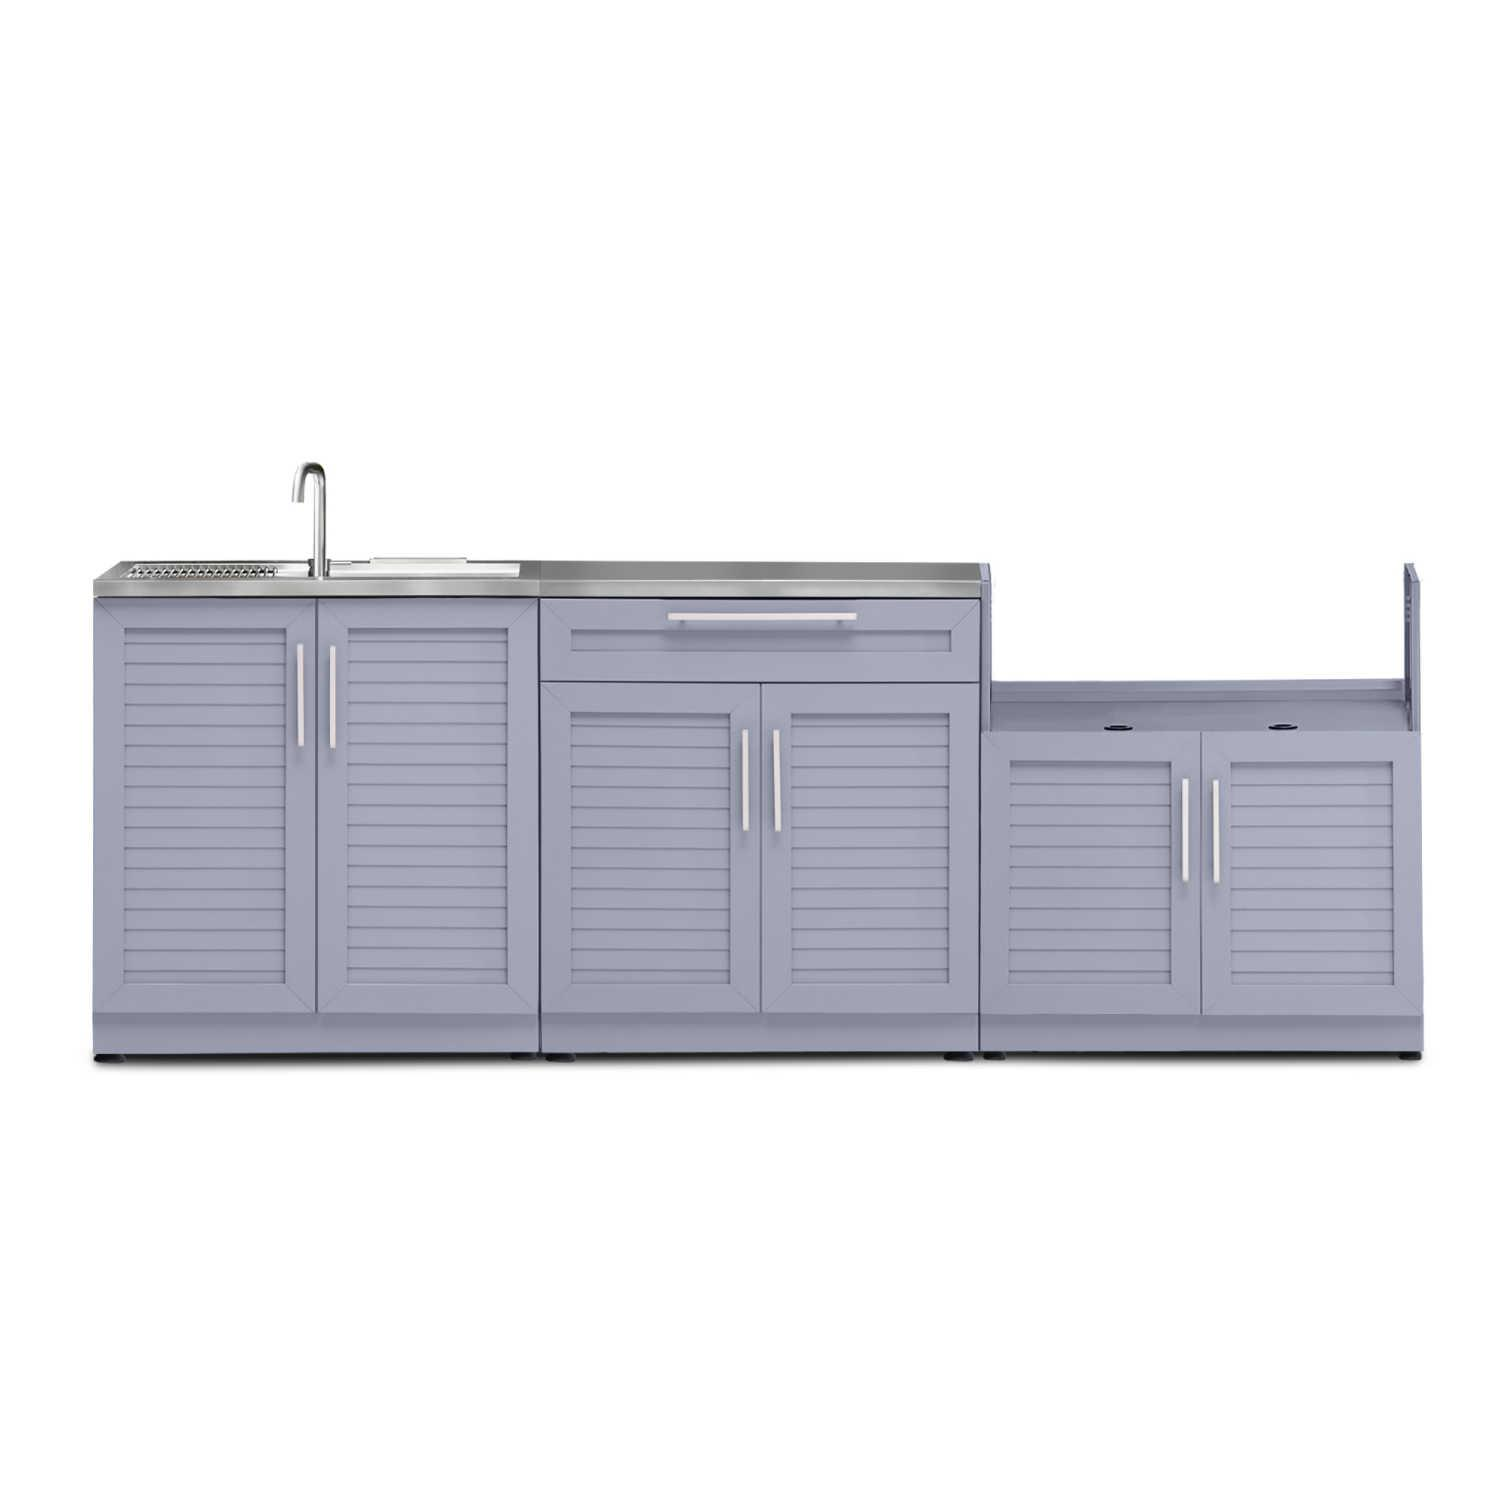 Newage Outdoor Kitchen 4 Piece Set With 33 Inch Insert Grill Cabinet Sink And Bar Center Coastal Gray 65458 Backyard Storage Outdoor Kitchen Cabinets Adjustable Shelving